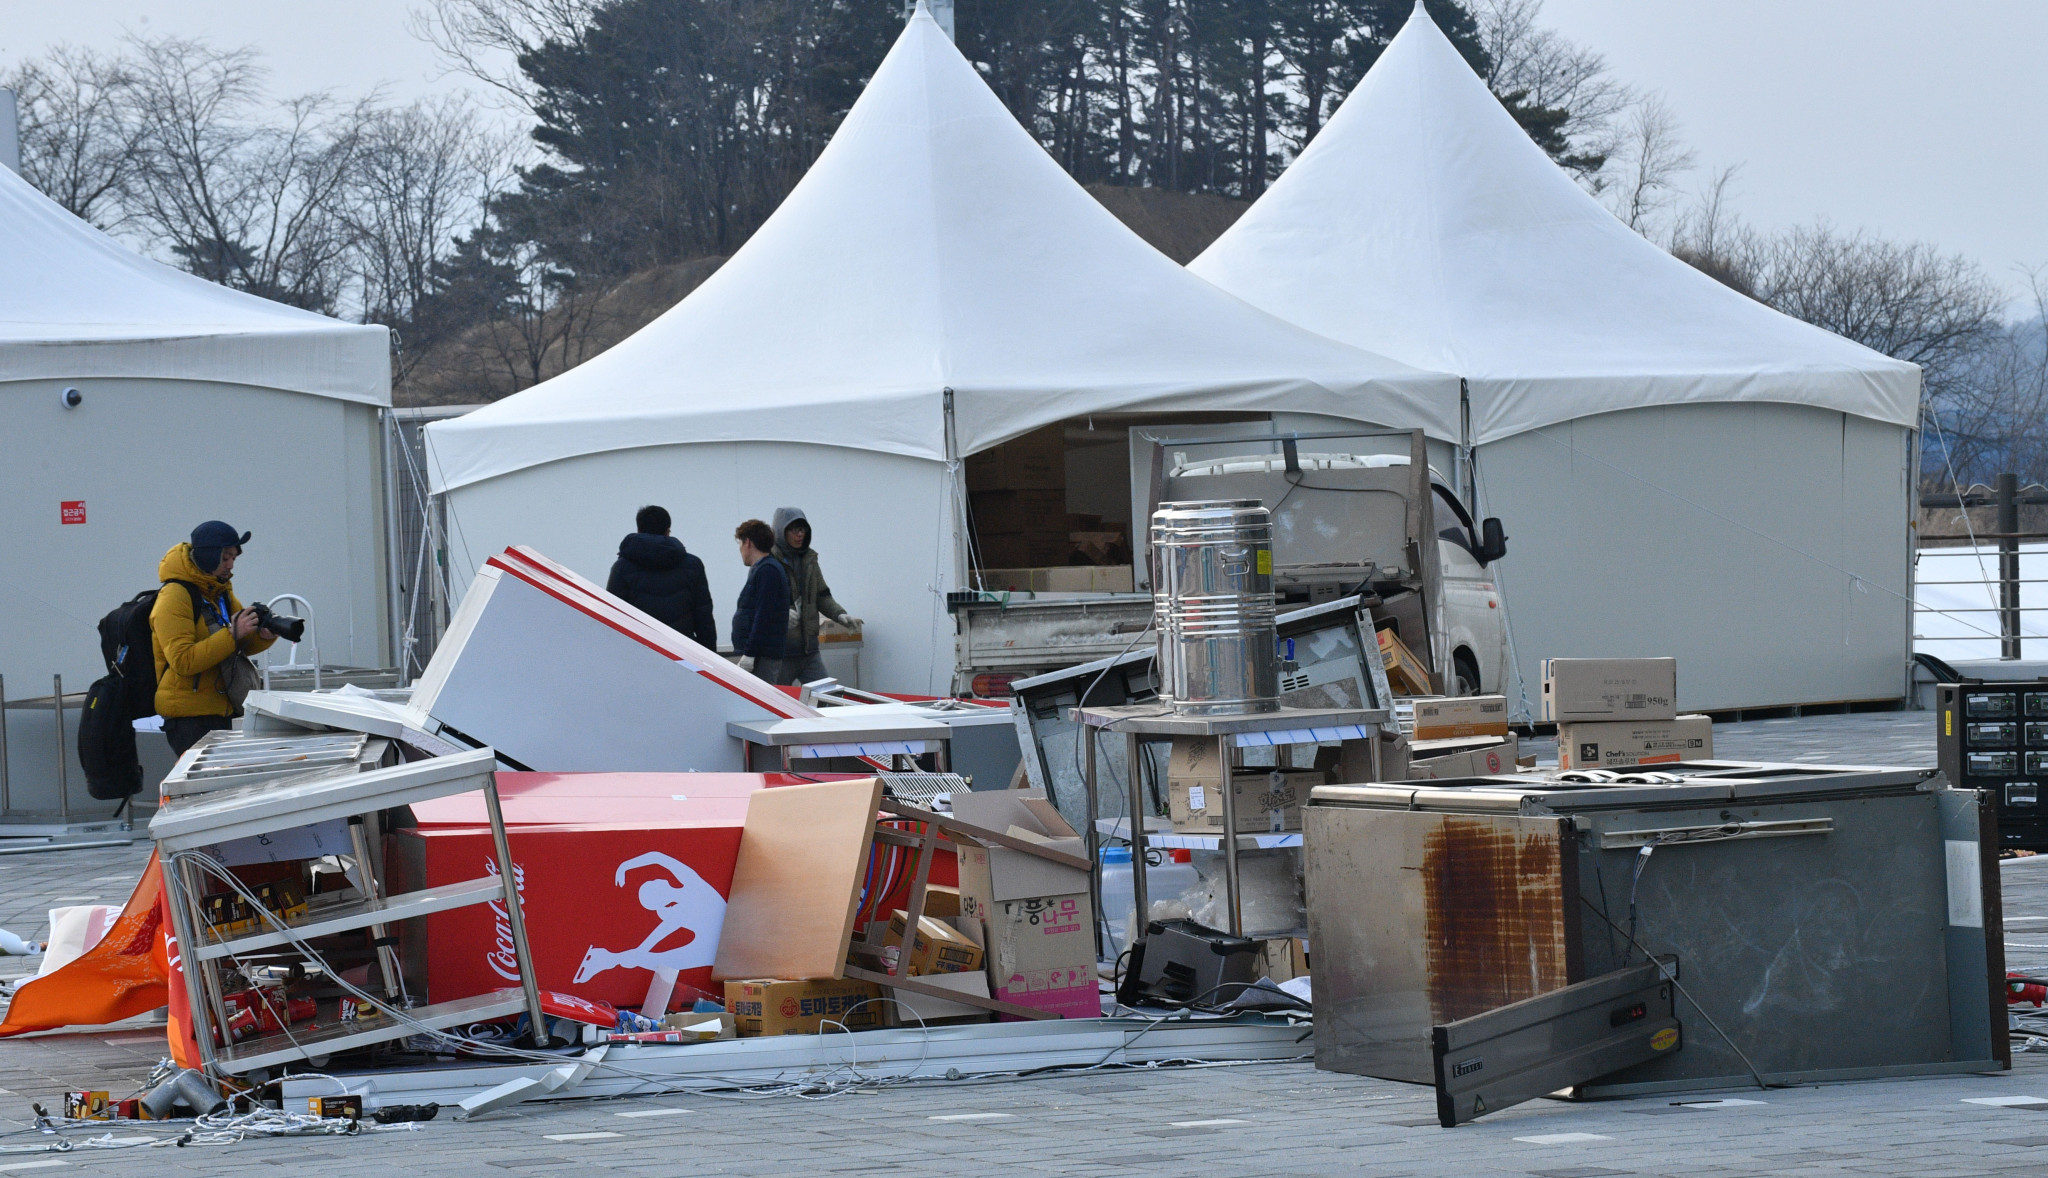 Pyeongchang 2018 close Gangneung Olympic Park as strong winds lead to safety fears